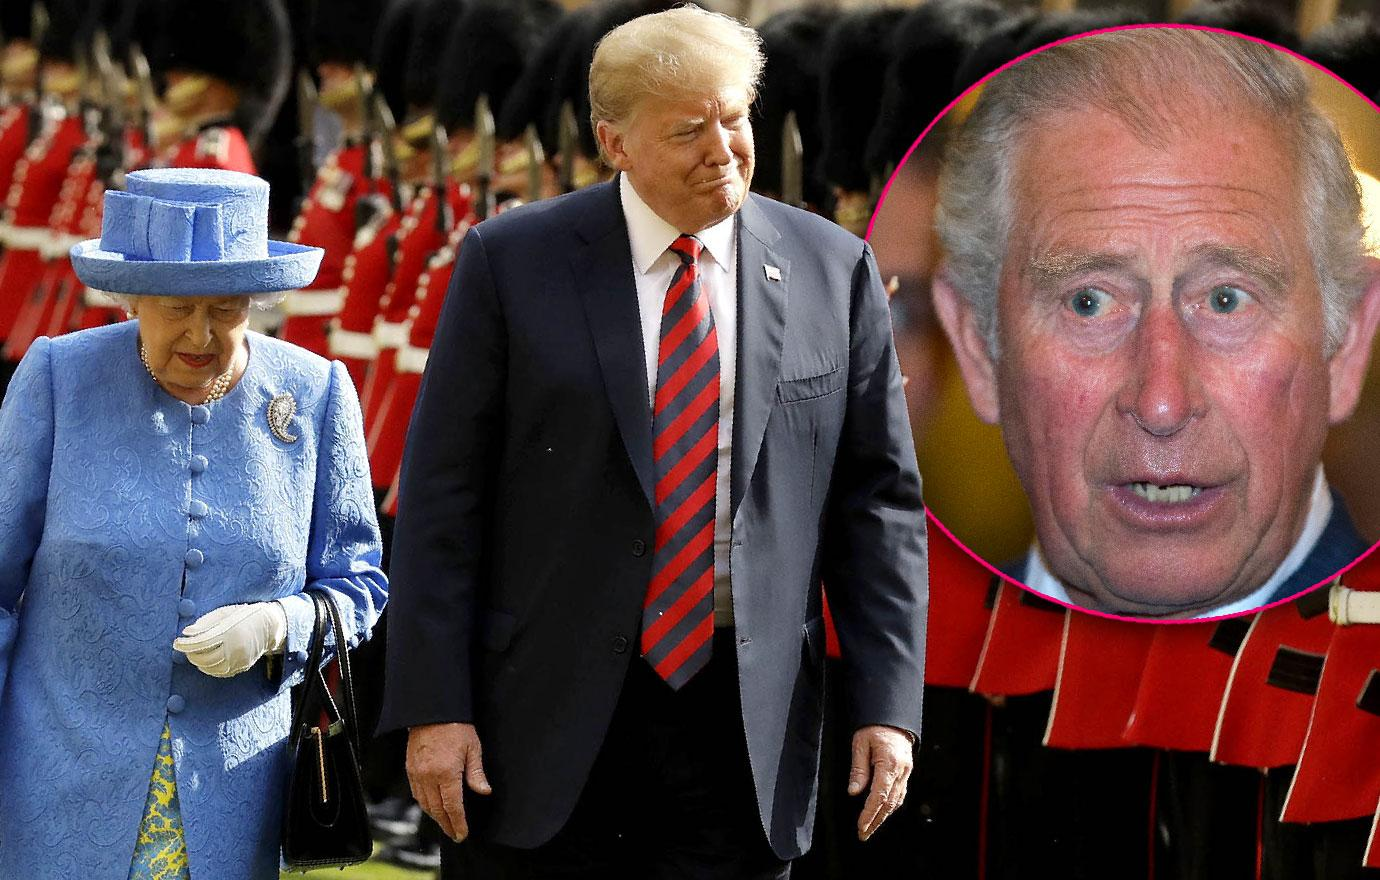 Prince Charles William Snub President Donald Trump Queen Meets Alone